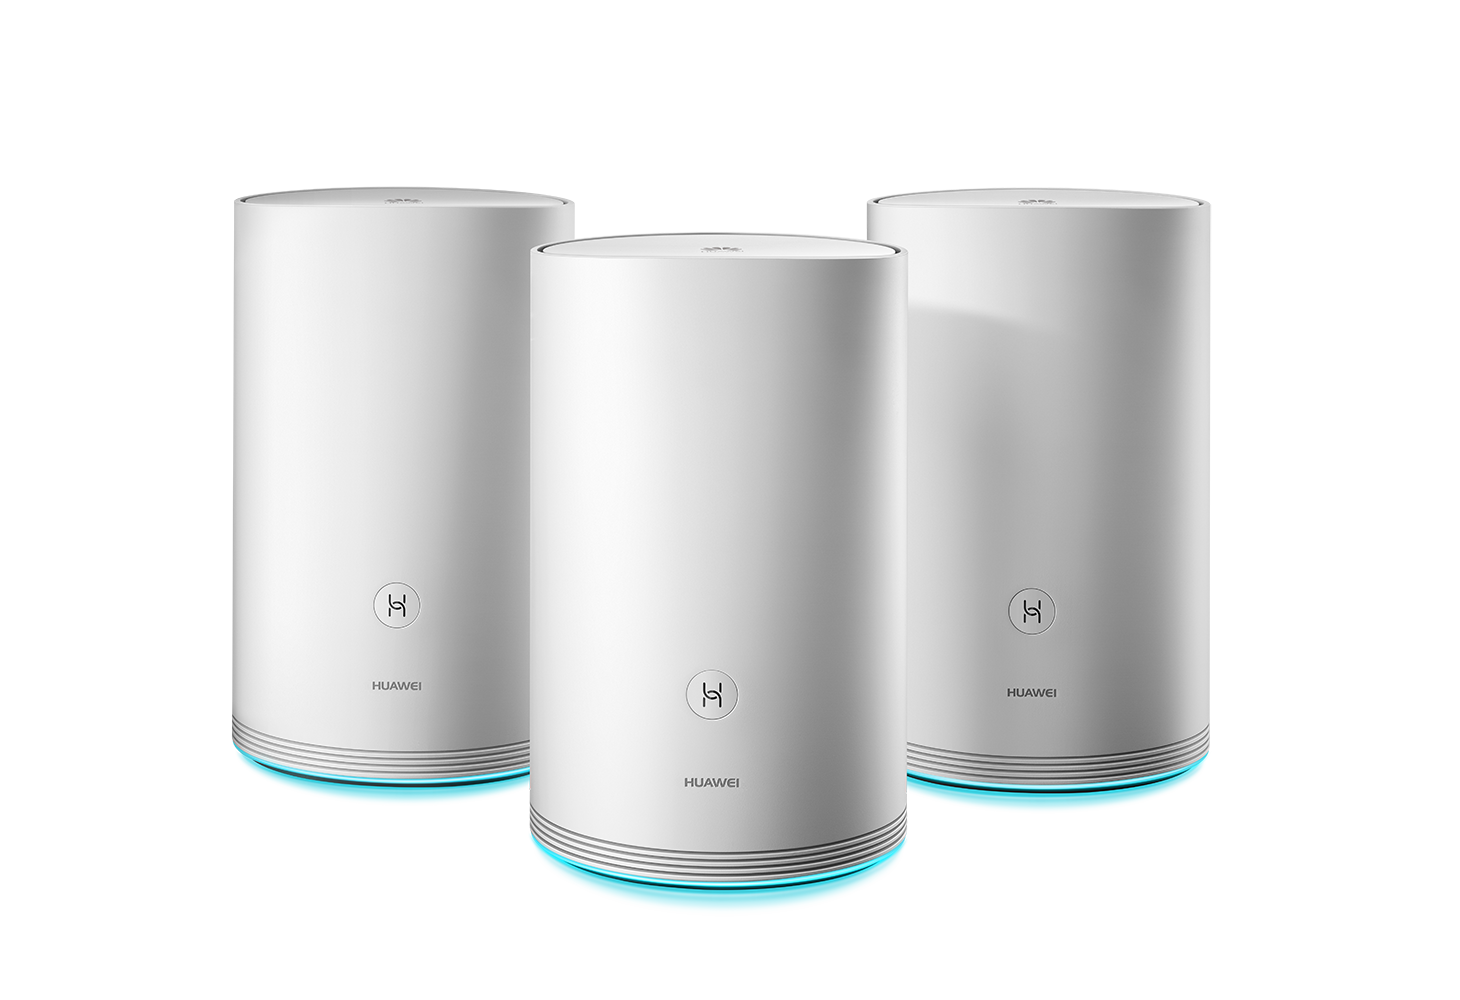 Huawei Hops On The Mesh Network Bandwagon With The Wifi Q2